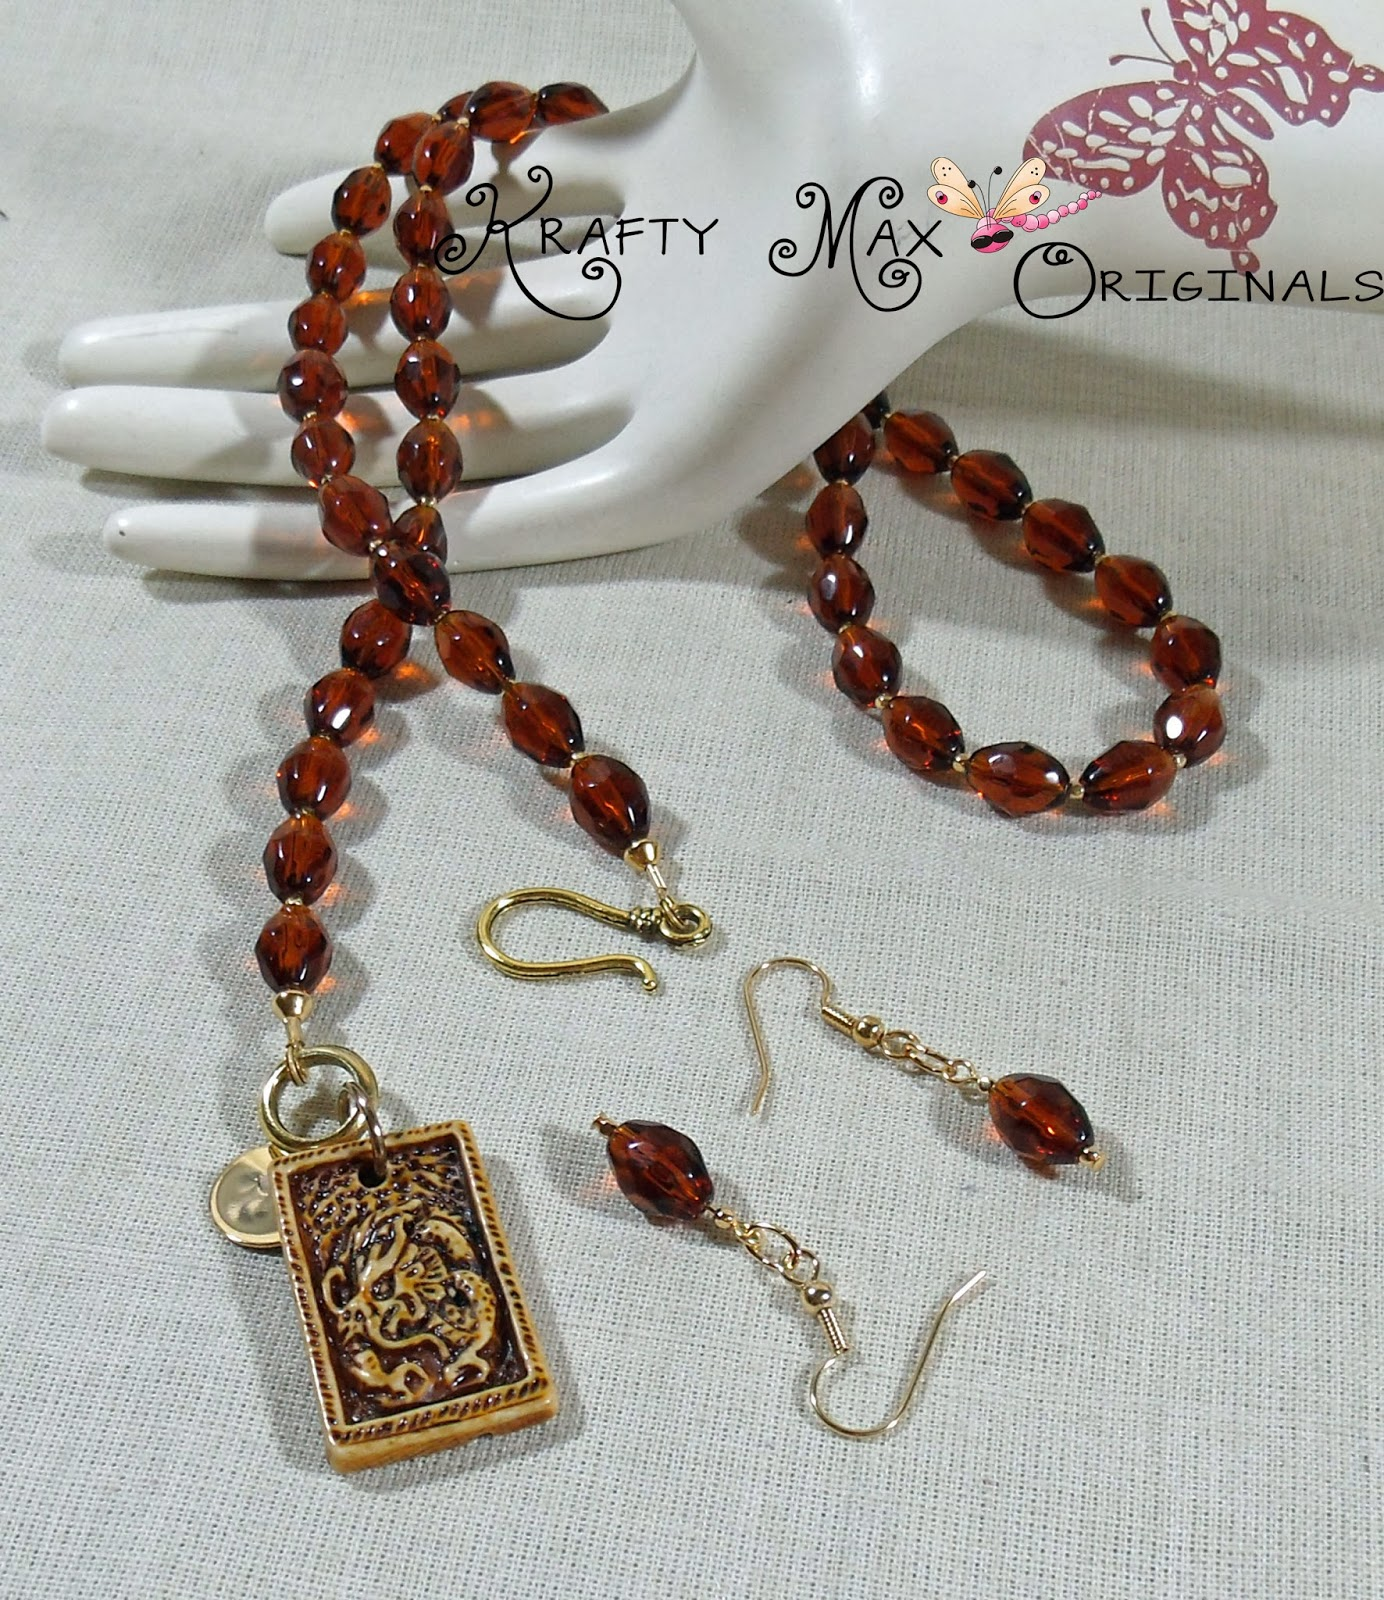 http://www.lajuliet.com/index.php/2013-01-04-15-21-51/ad/sets,85/exclusive-brown-ceramic-dragon-and-glass-beads-necklace-set-a-krafty-max-original-design,121